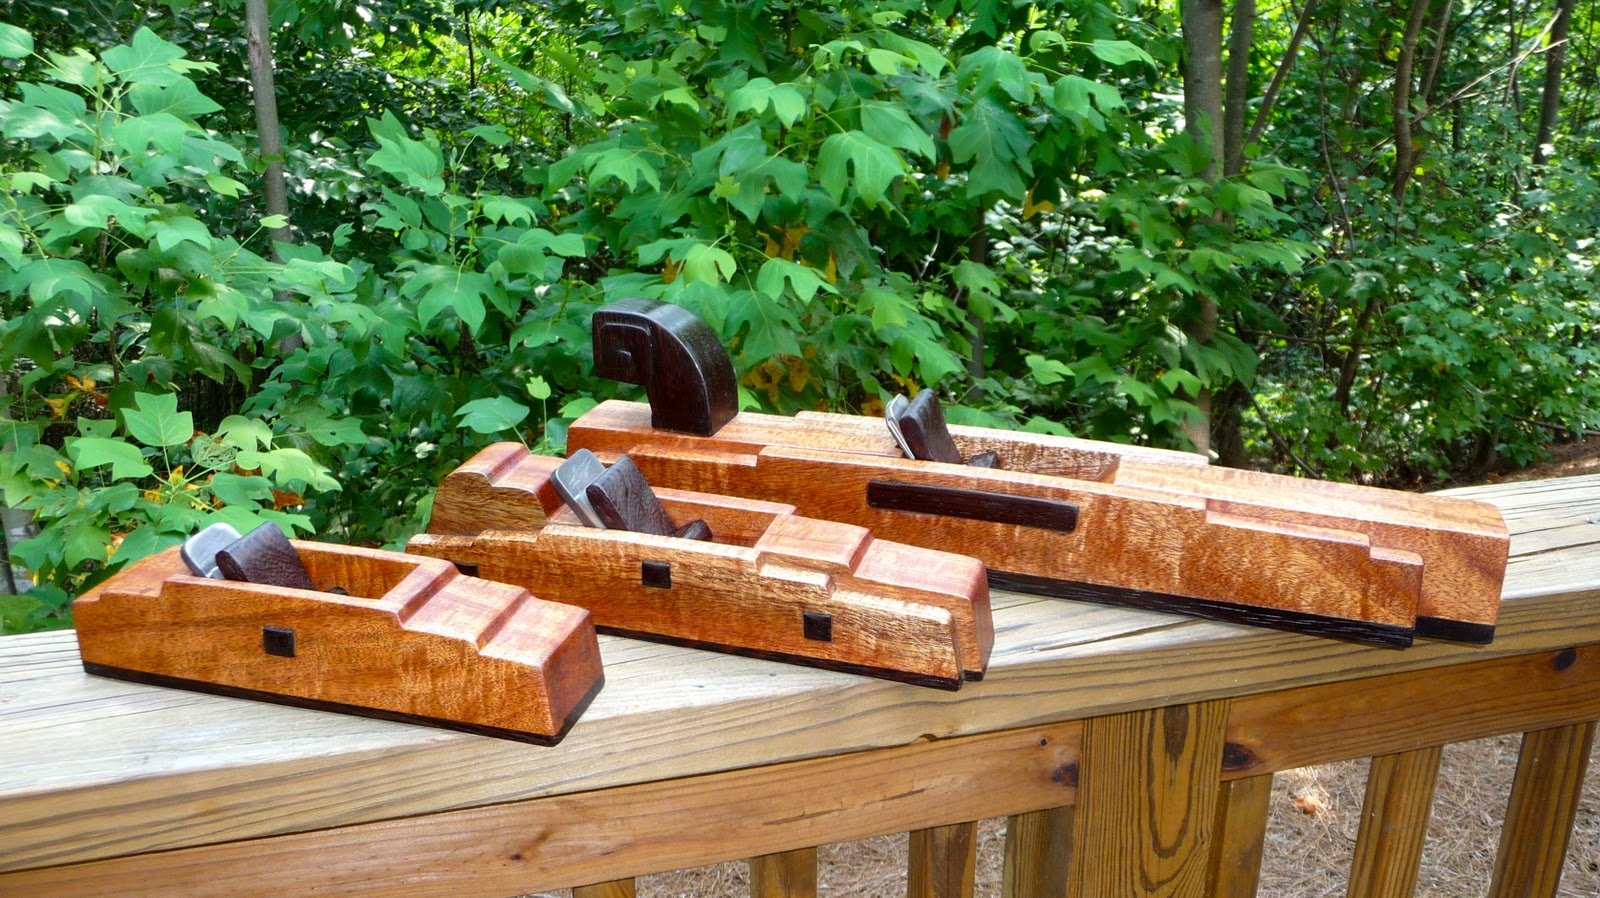 Woodworkers Guide: Hand Tools: Woodworking Hand Planes and Planemakers